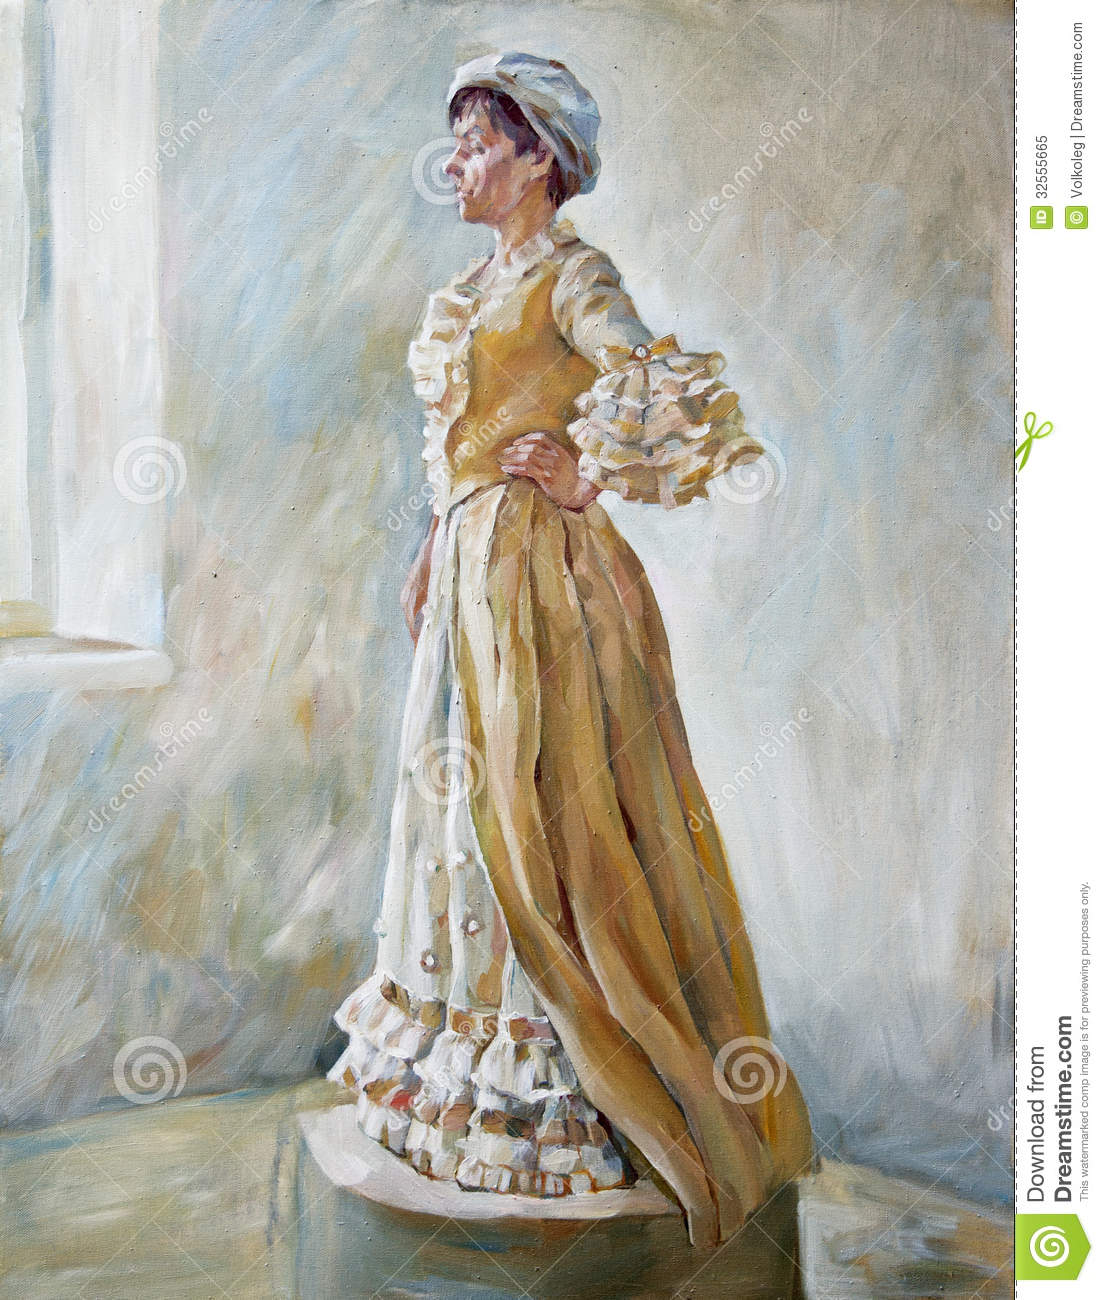 Woman In Old Fashioned Dress Standing Oil Illustration